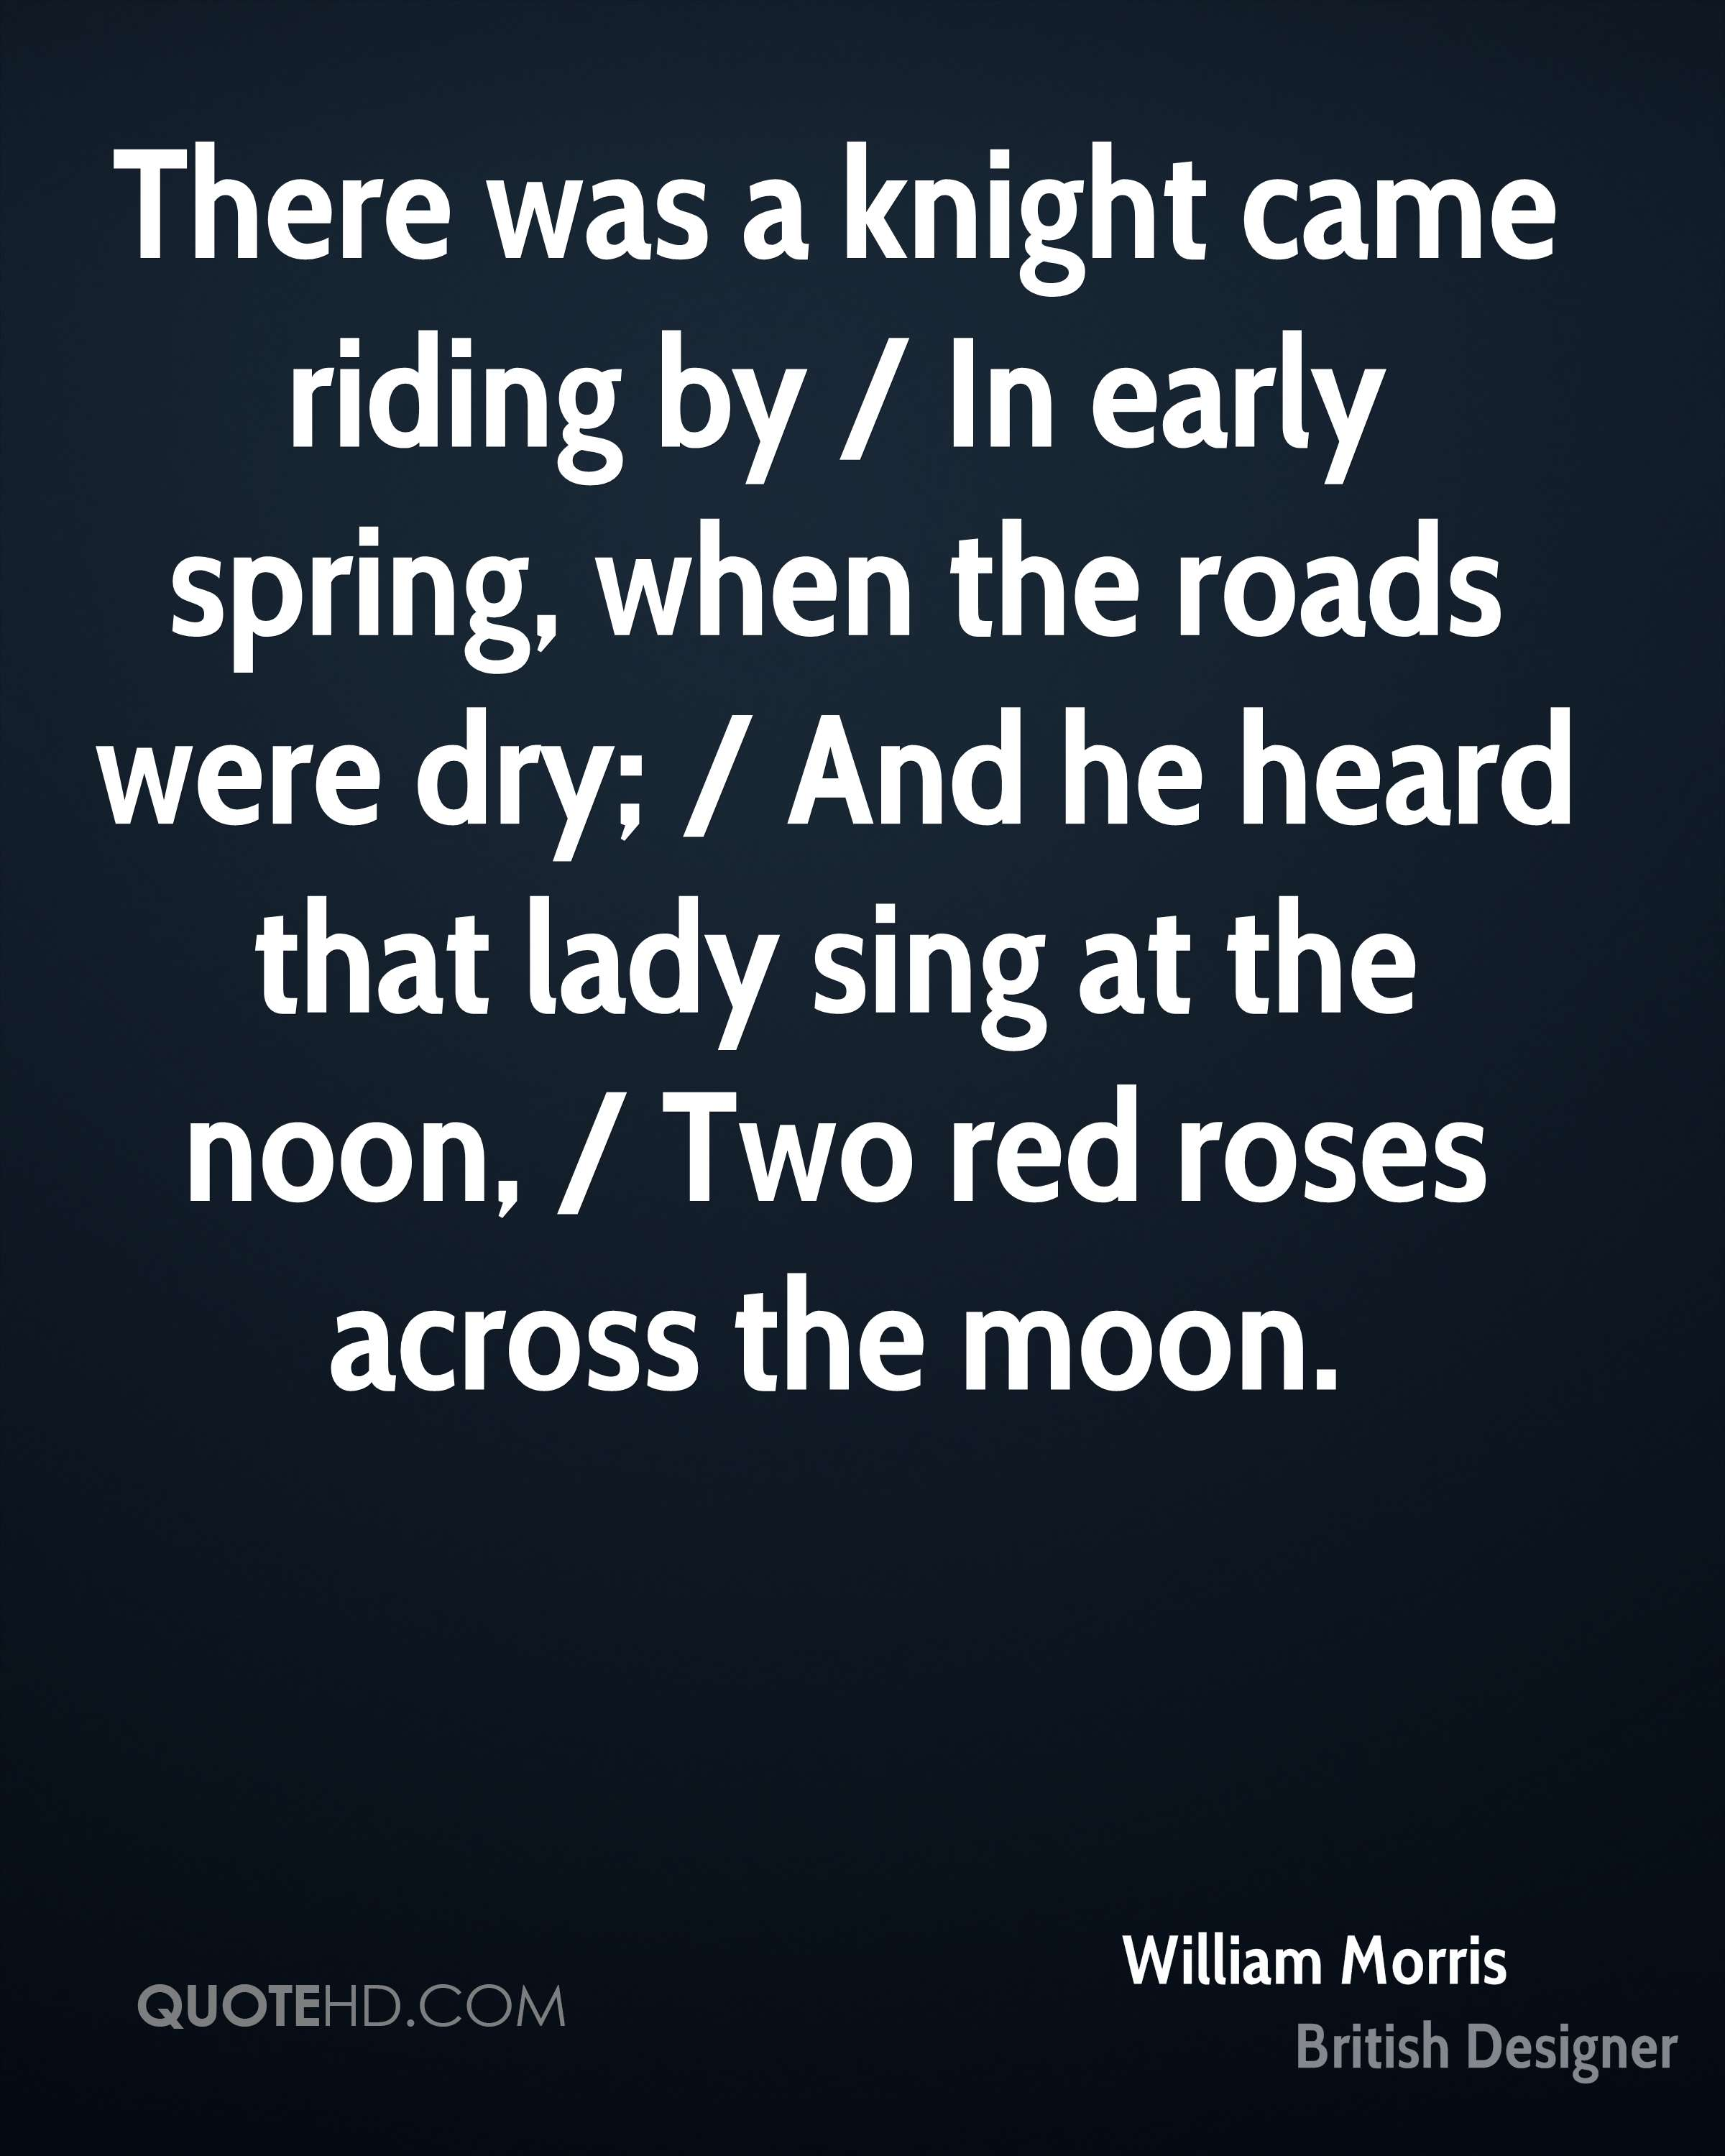 There was a knight came riding by / In early spring, when the roads were dry; / And he heard that lady sing at the noon, / Two red roses across the moon.